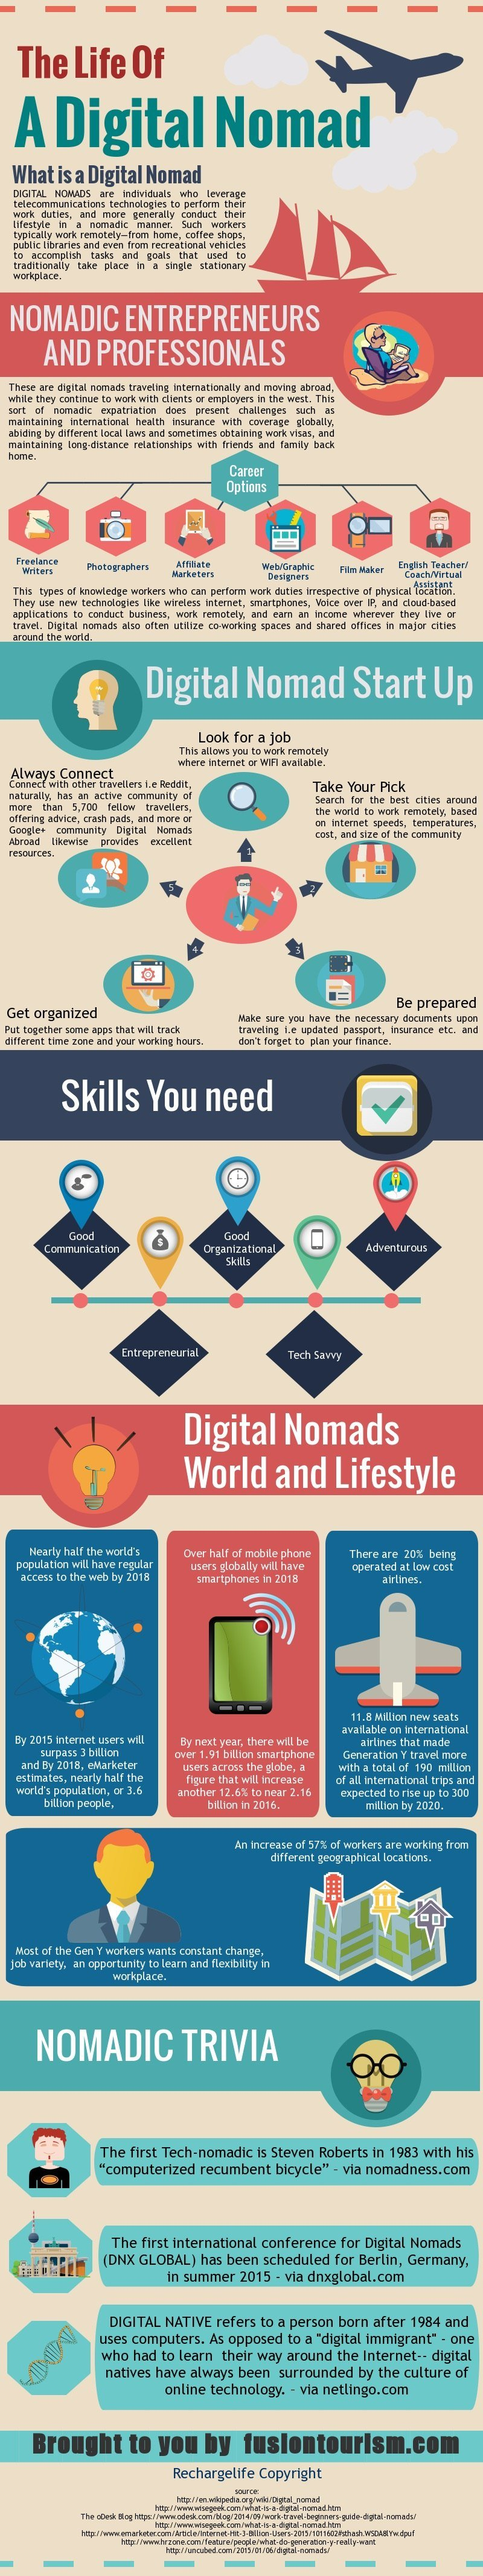 The Life of Digital Nomad FT